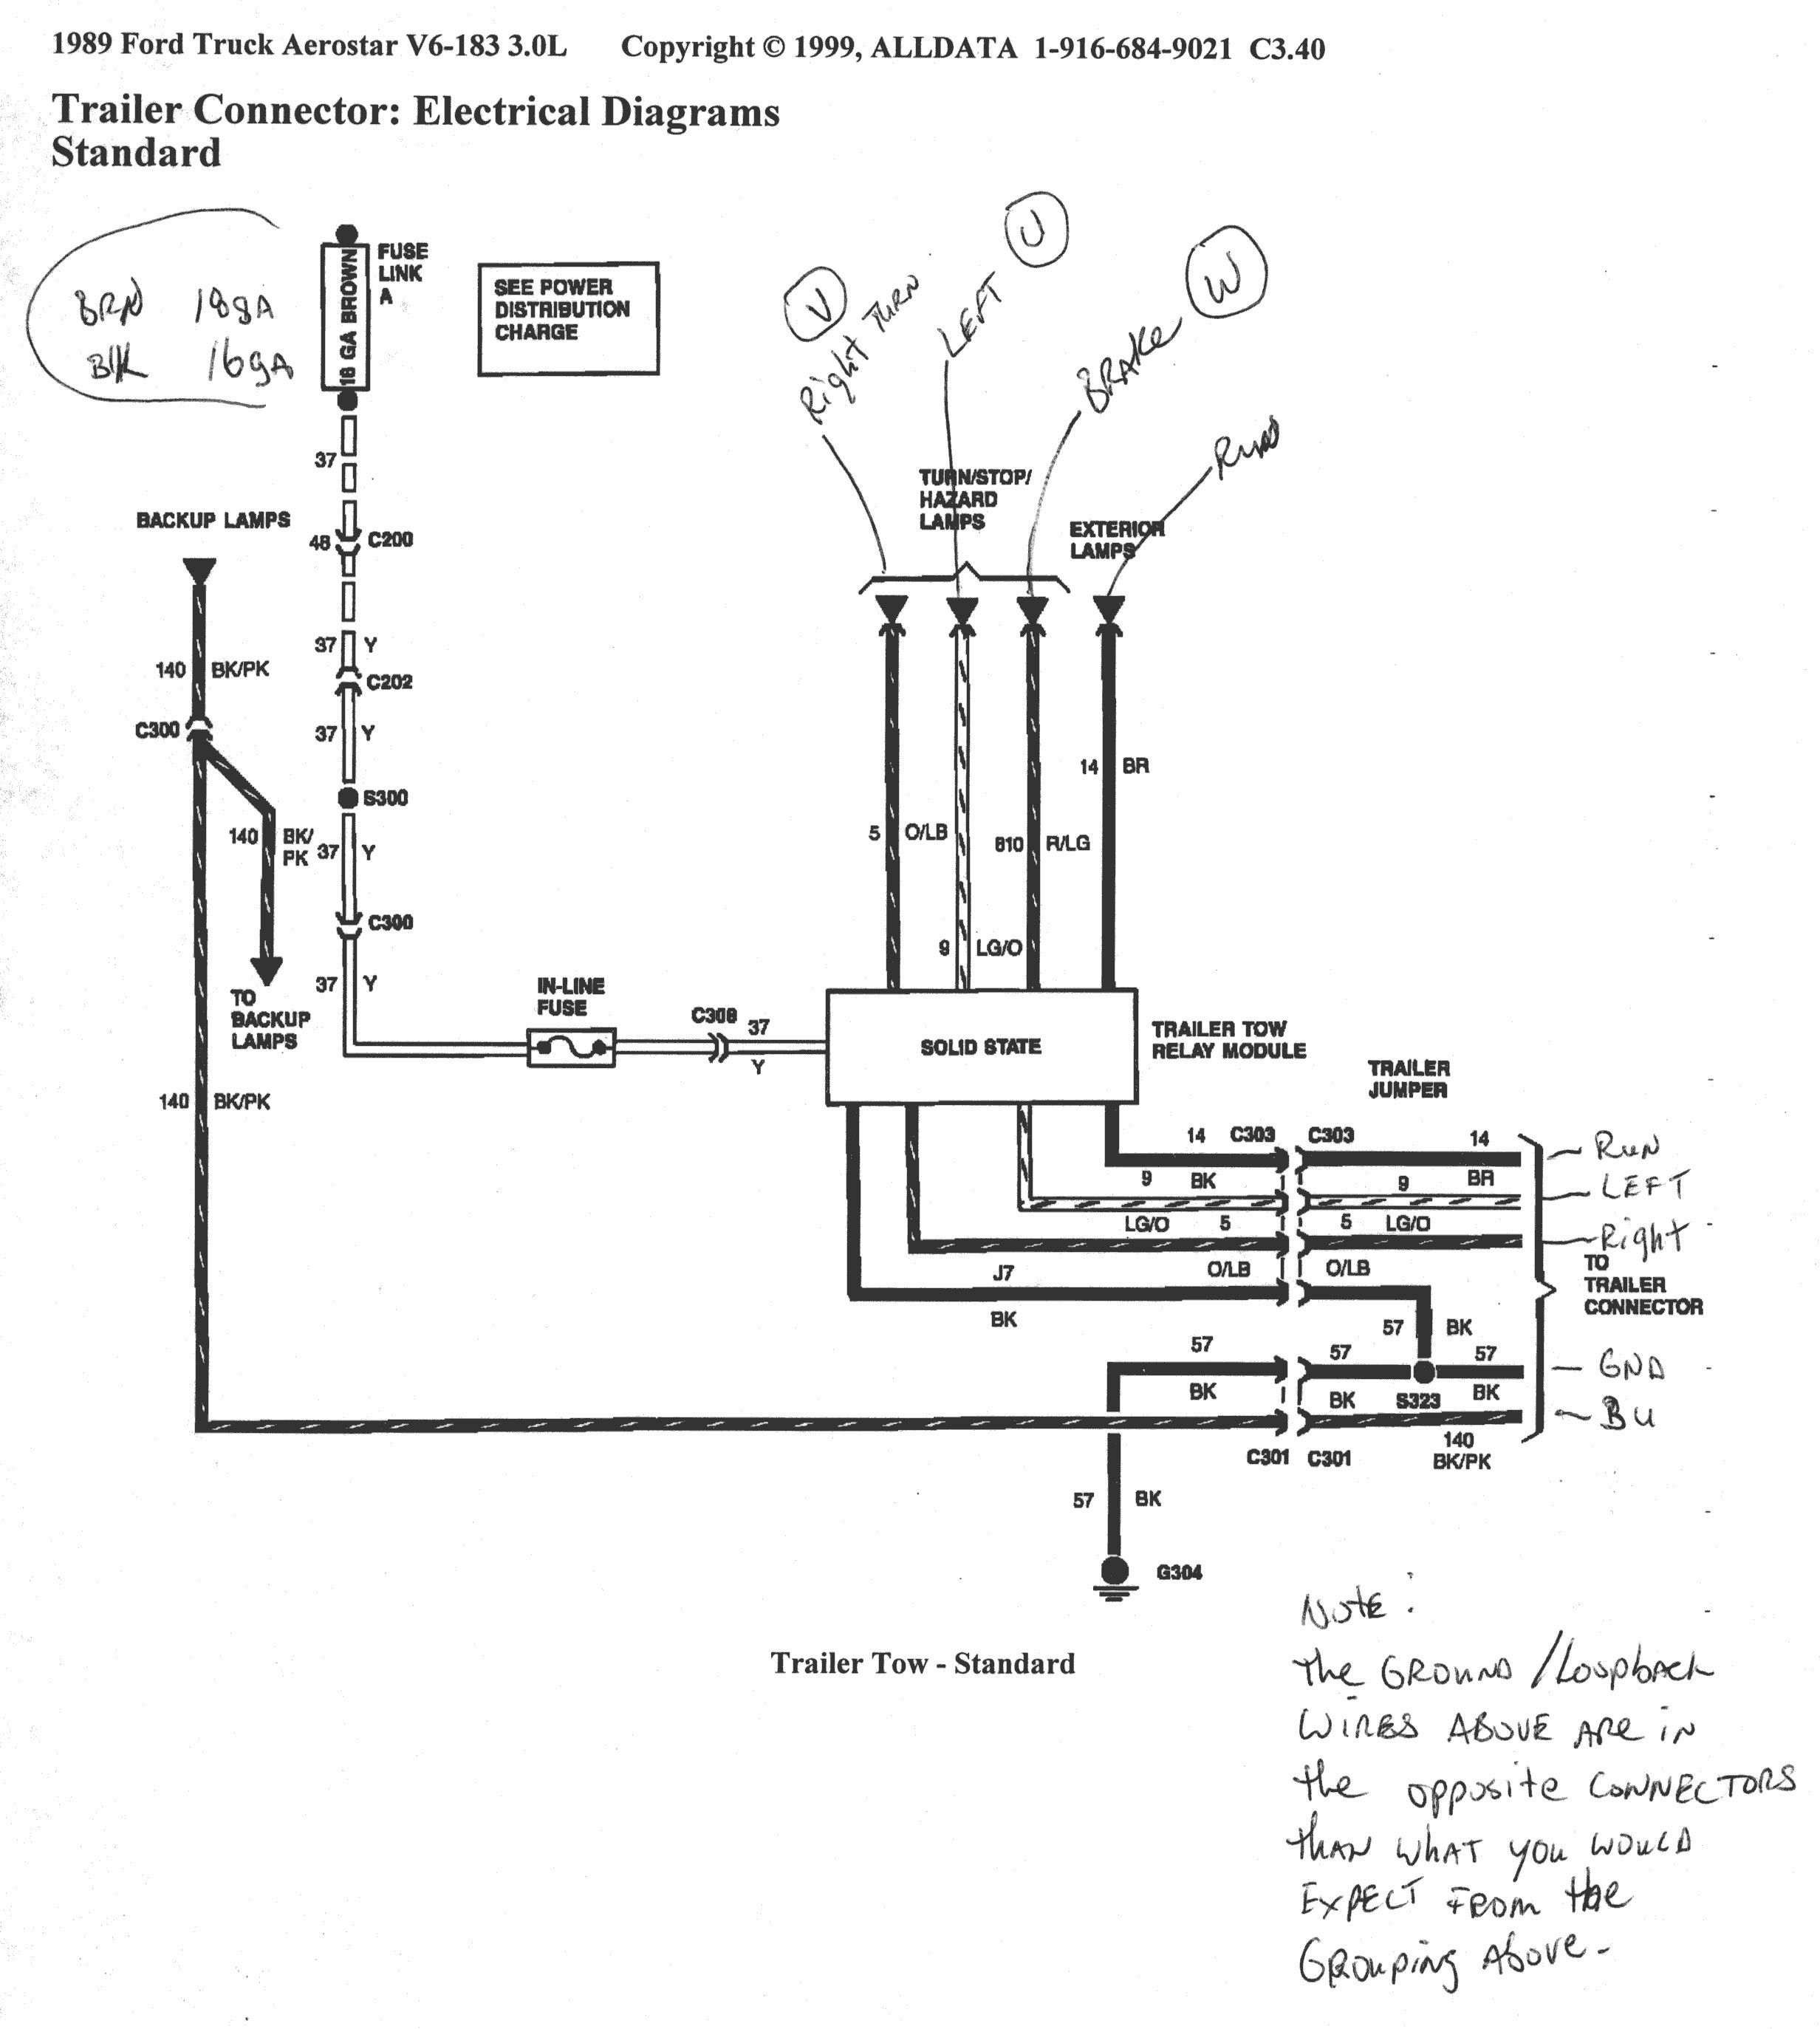 Trailer Light Harness Diagram Trailer Light Plug Diagram Wiring Diagram Of Trailer Light Harness Diagram